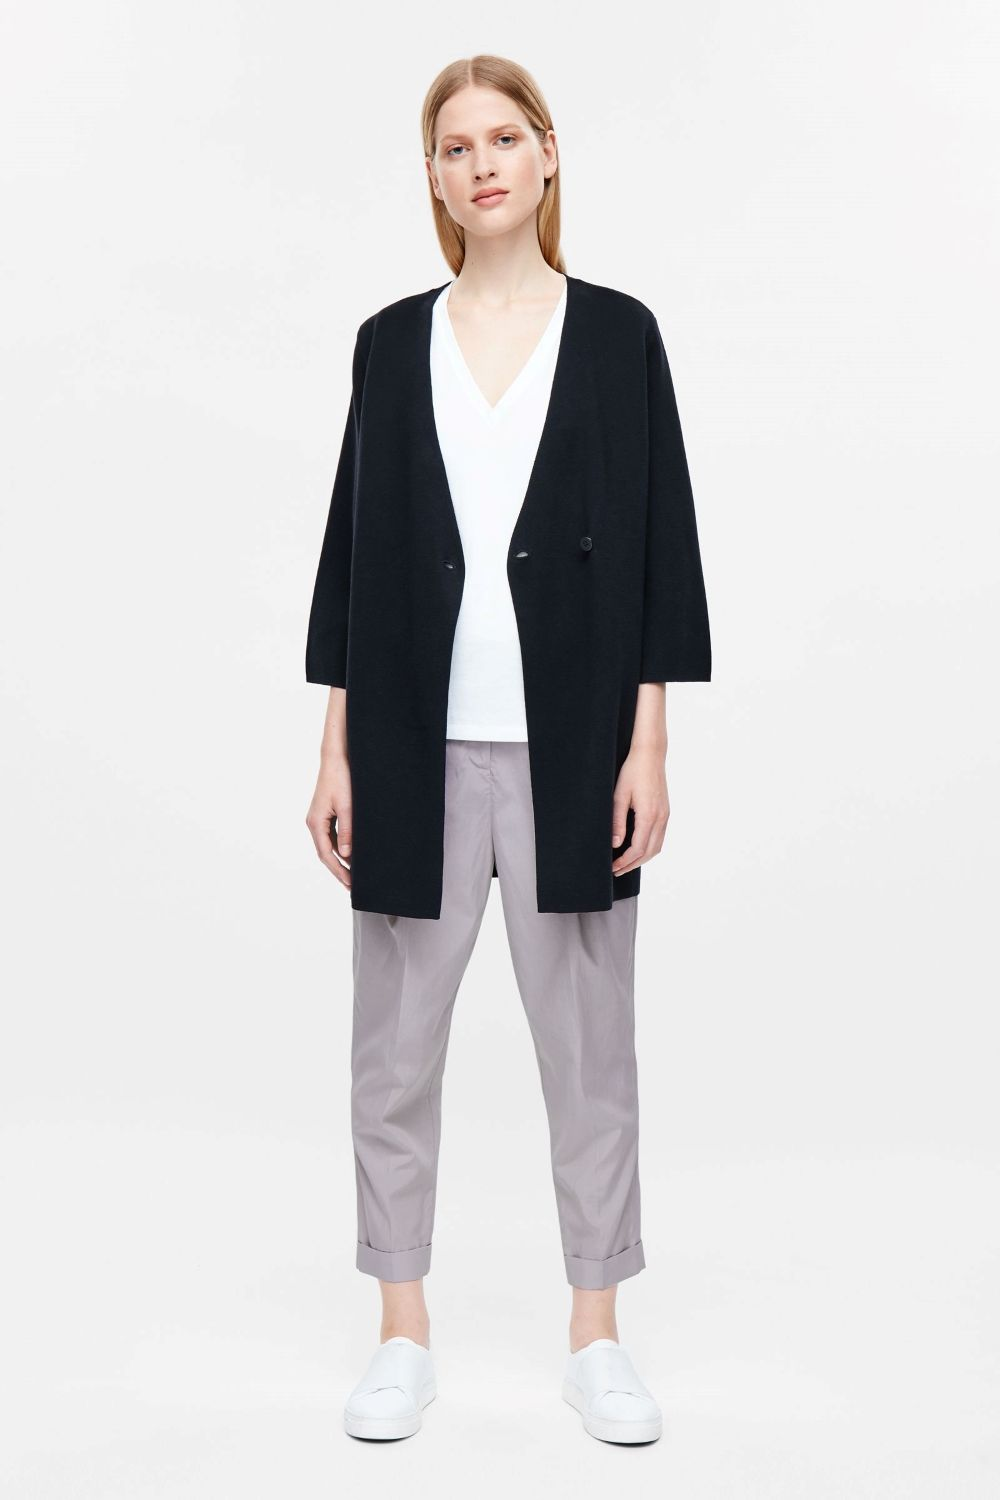 Made from a milano knitted cotton, this cardigan has a overlapping front with a simple button fastening. A relaxed fit, it has a deep v-neckline, wide sleeves and modern, clean-cut finishes.